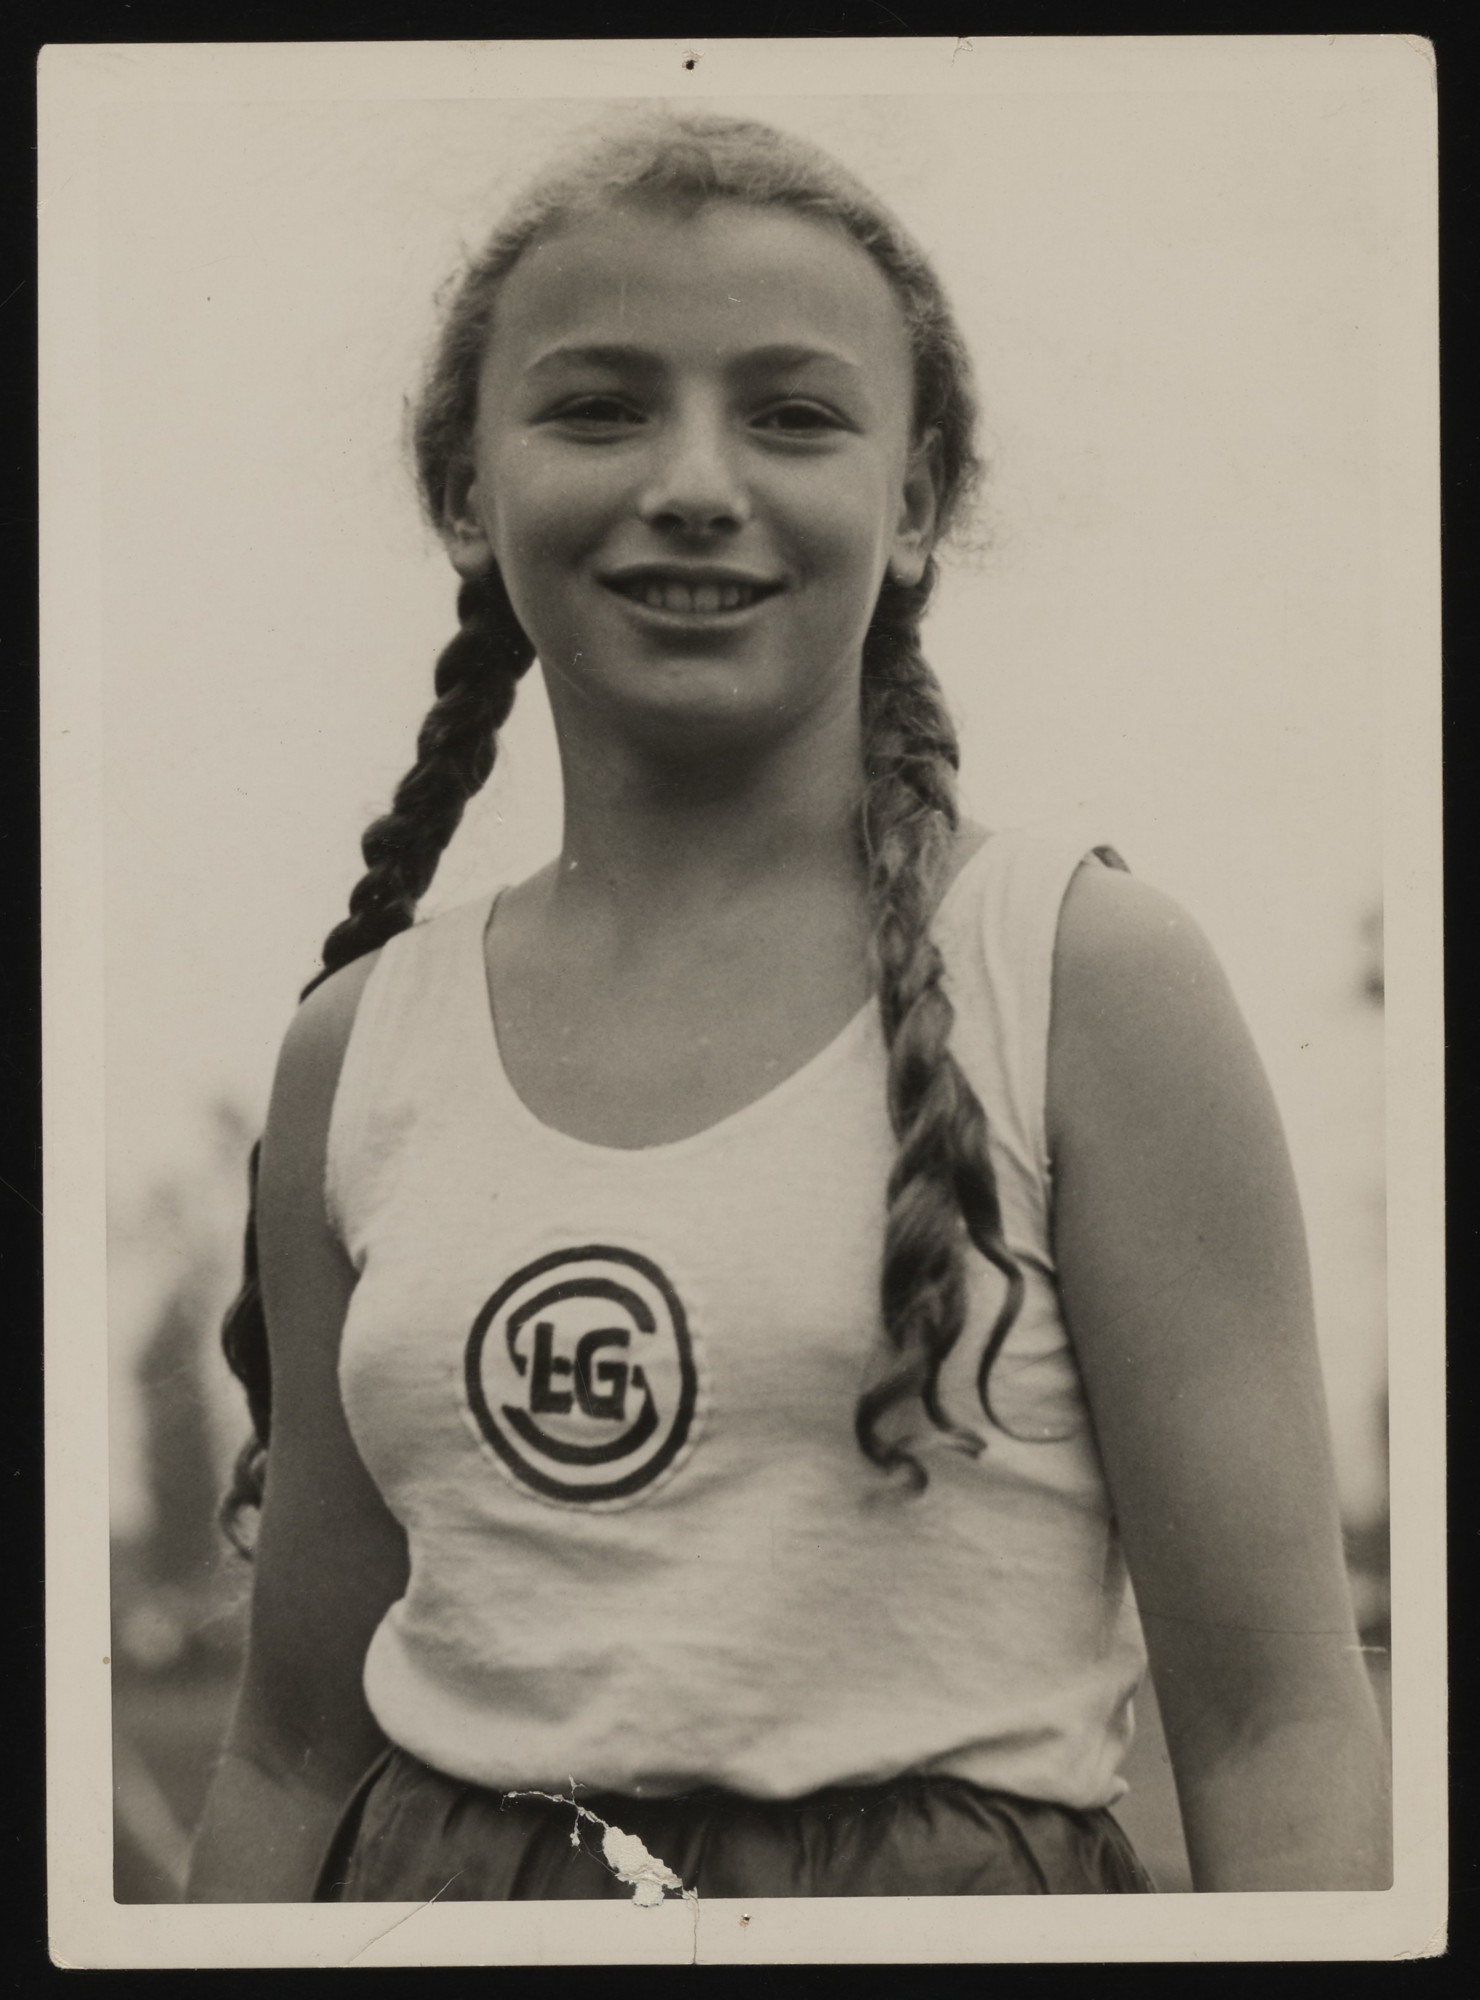 Close-up portrait of Gertrud Goldschmidt, a student from the Lenore Goldschmidt School, during a track and field event. She is also the daughter of the founder of the school, Lenore Goldschmidt.